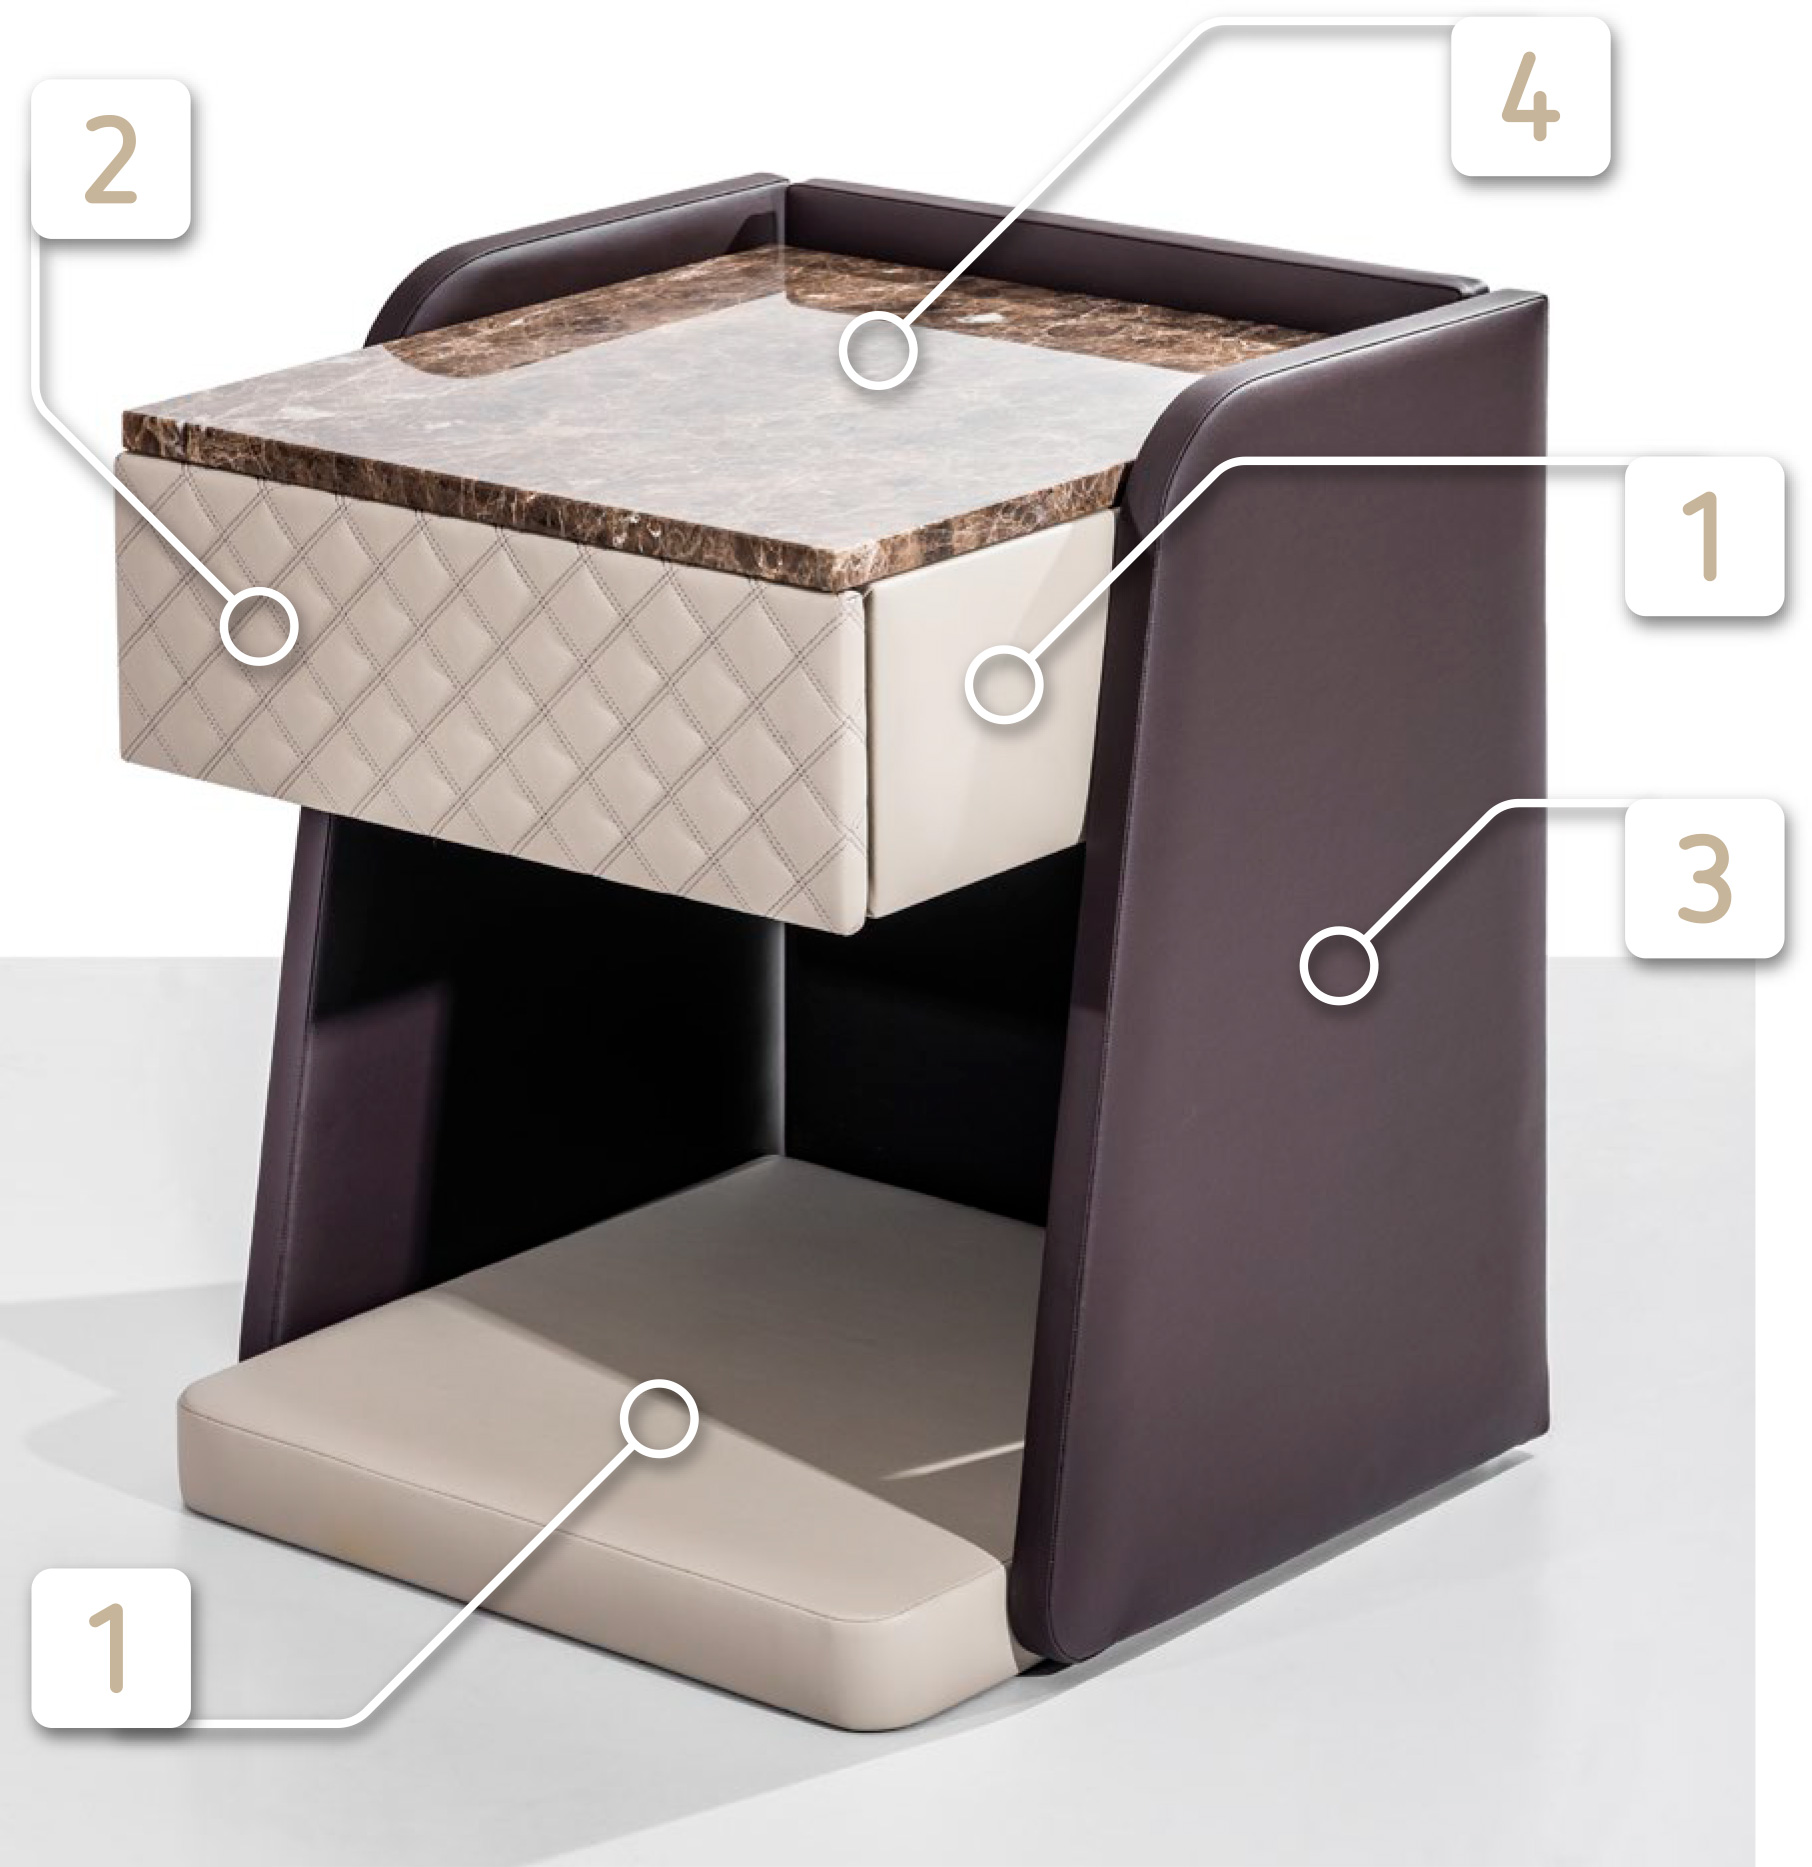 Cosmopolitan bedside table by Colunex cosmopolitan Cosmopolitan colunex bedside table cosmopolitan costum